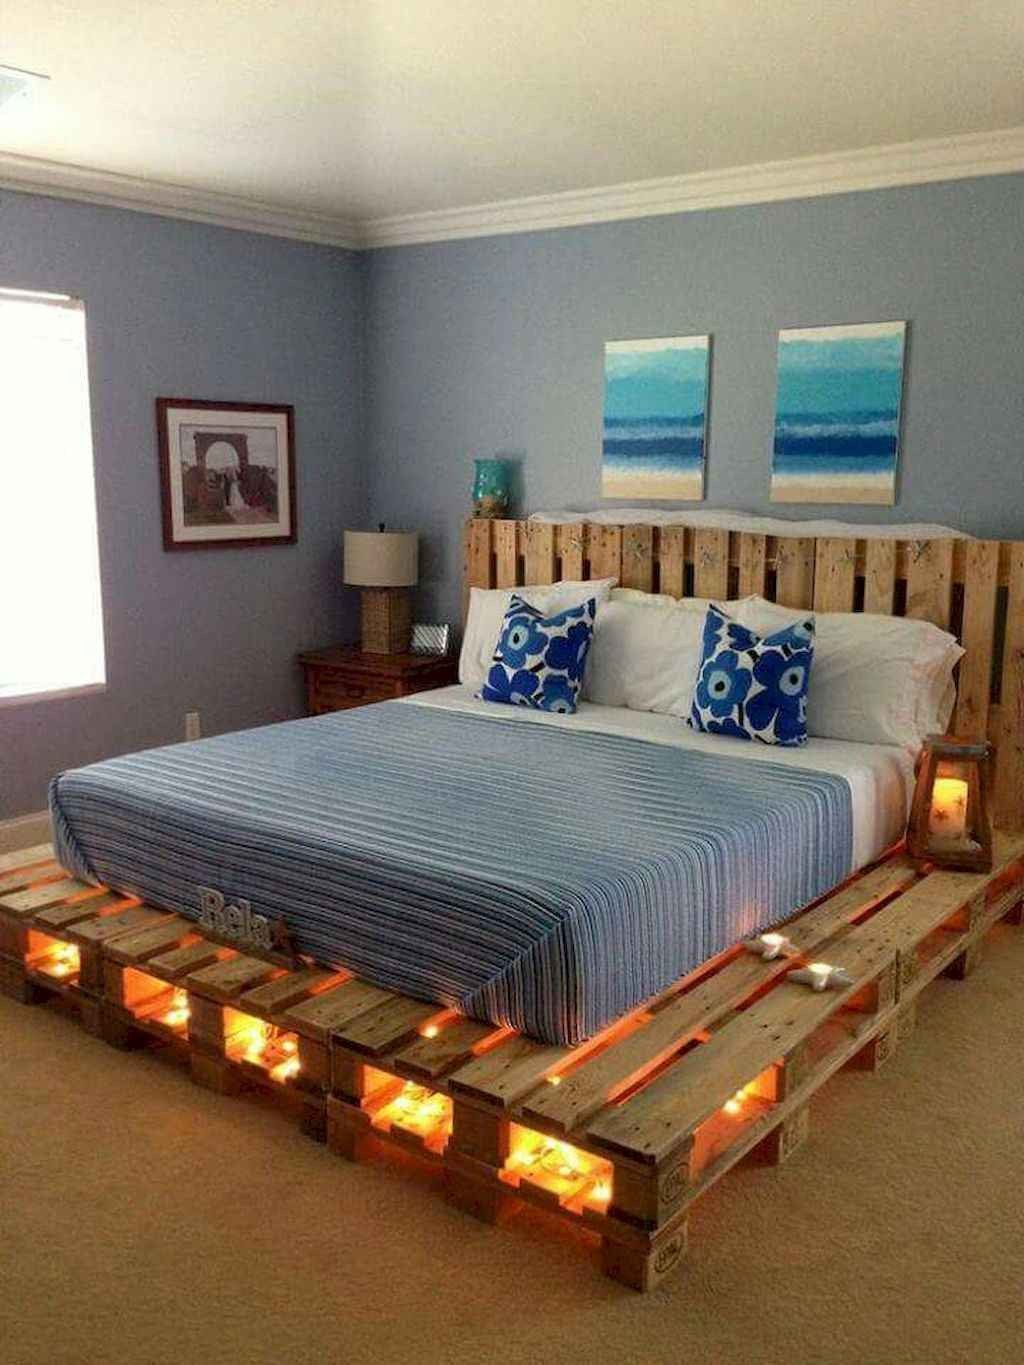 Pin On Bed Room Decorating Image Ideas